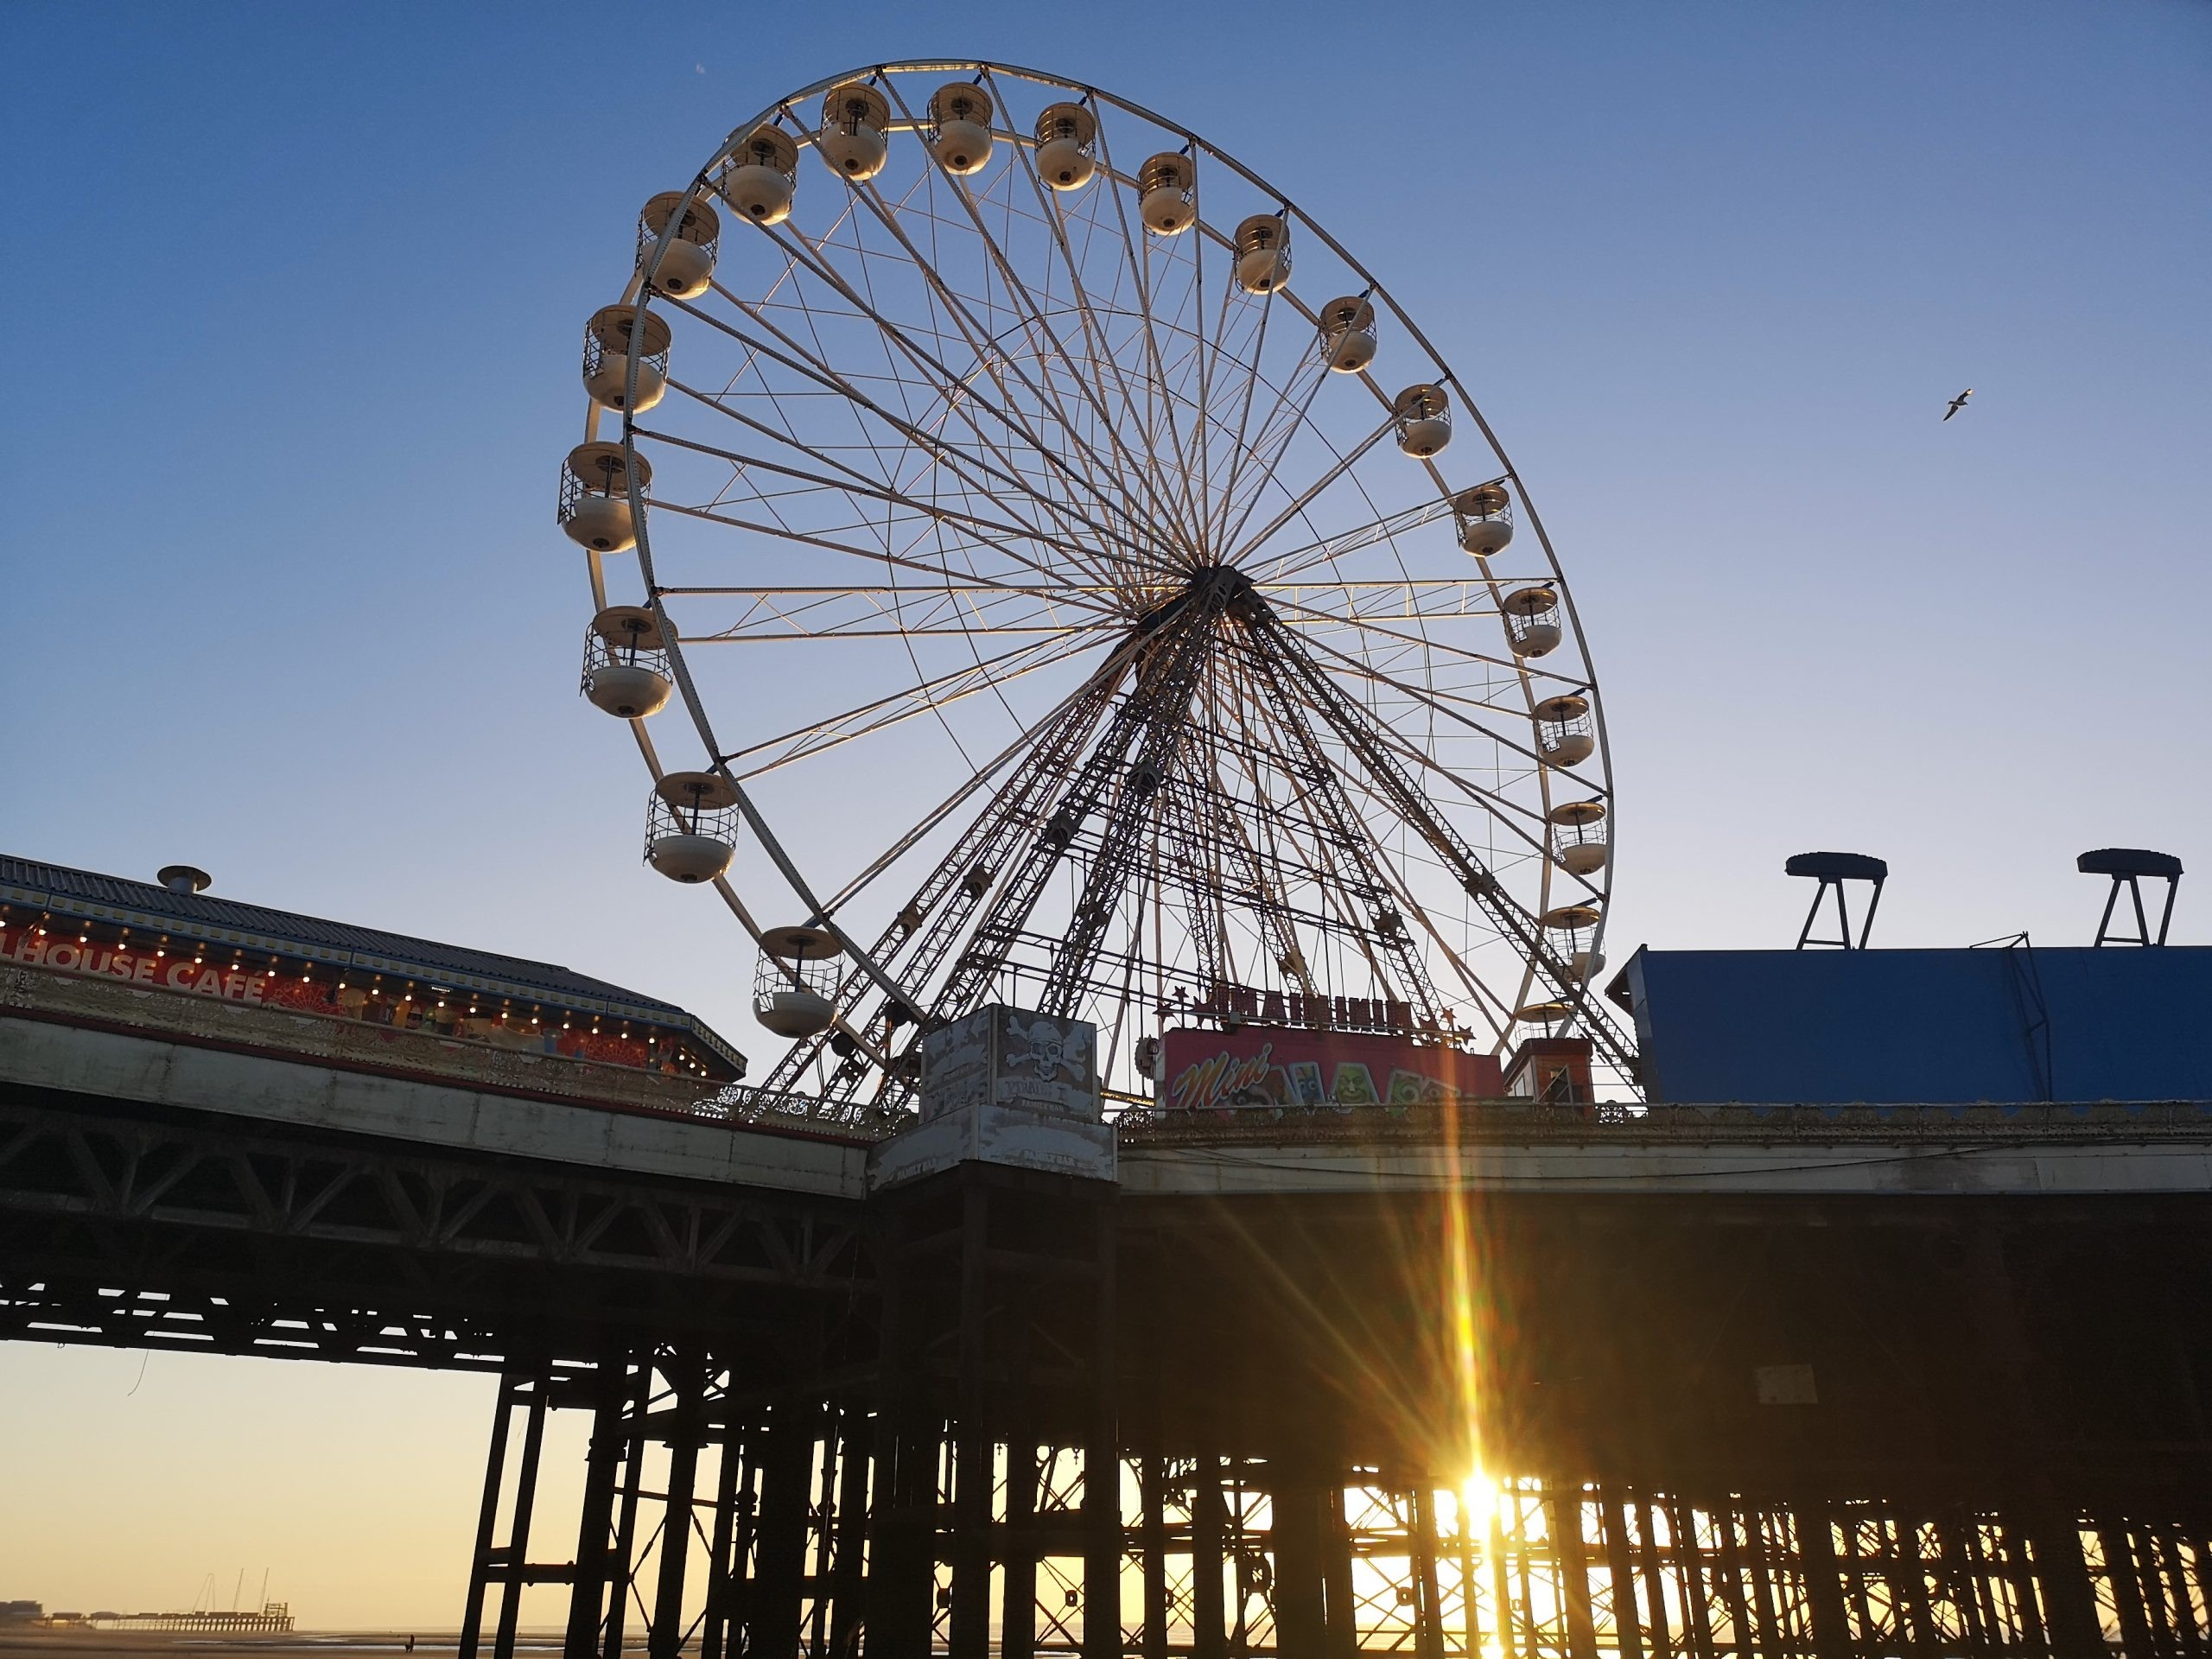 Ferris Wheel at Blackpool's Central Pier